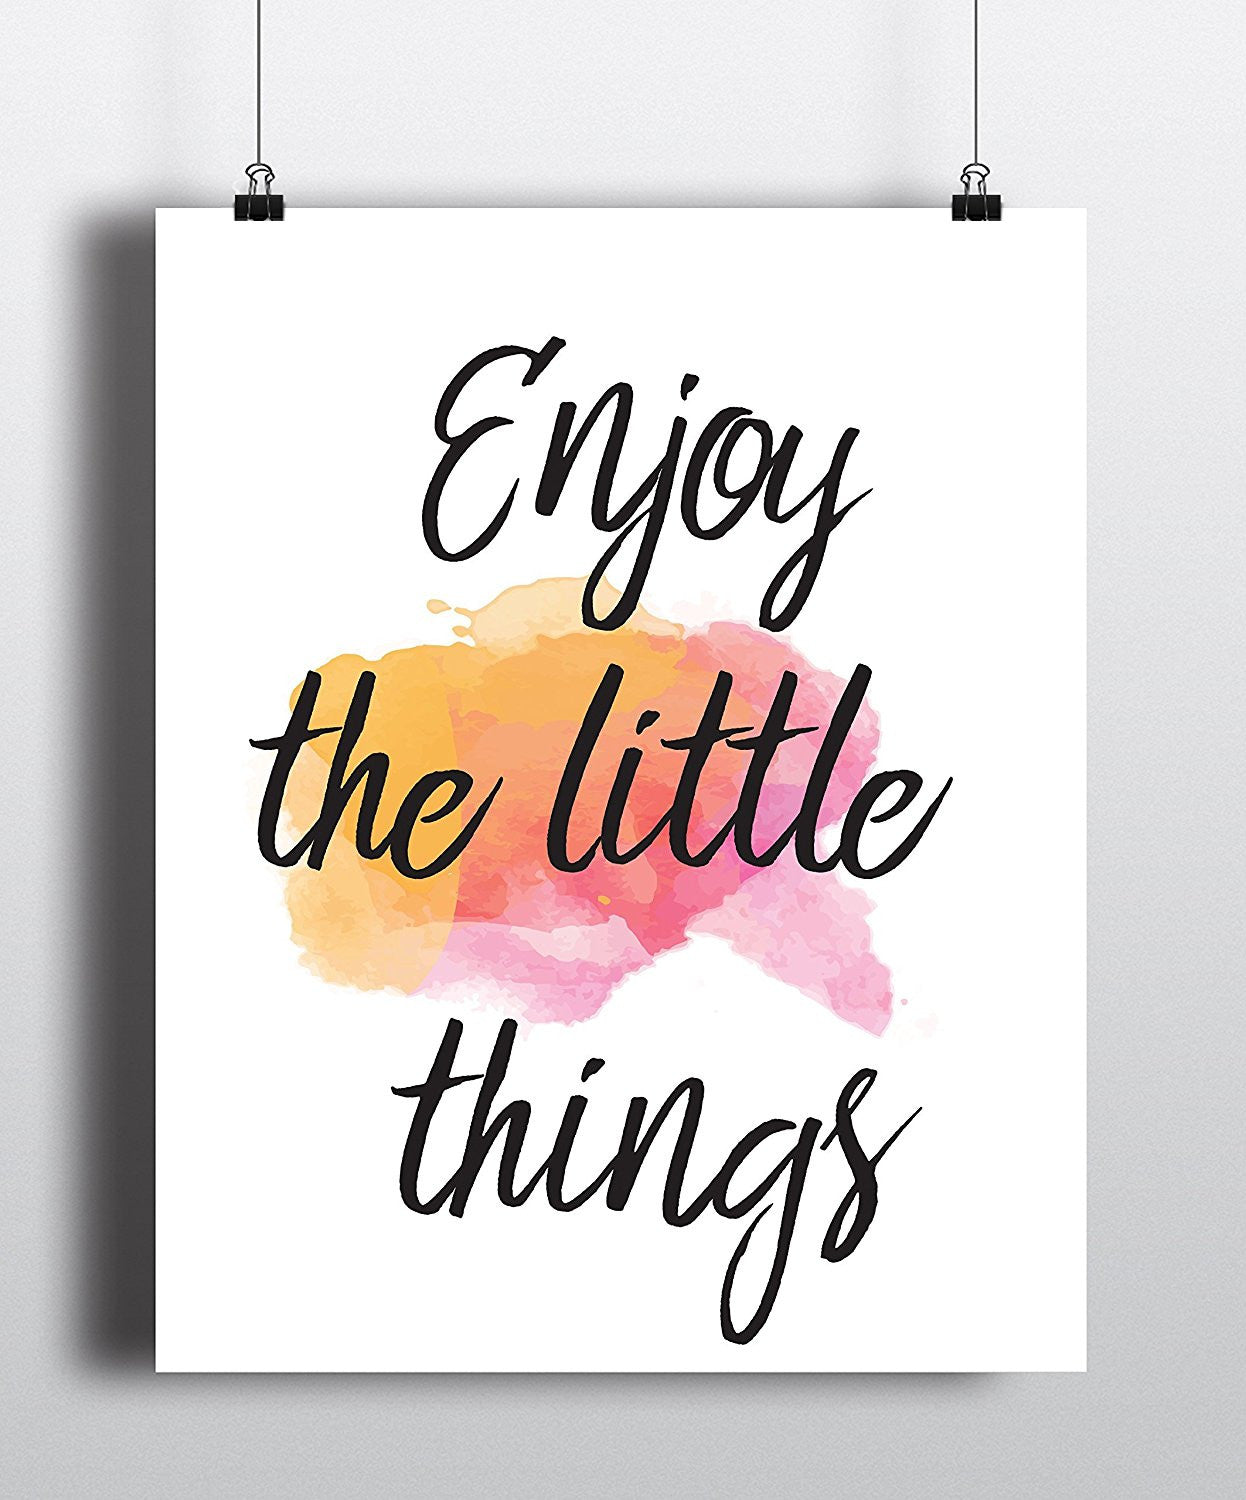 Enjoy The Little Things Quote Art Print   Unframed   Zuziu0027s ...